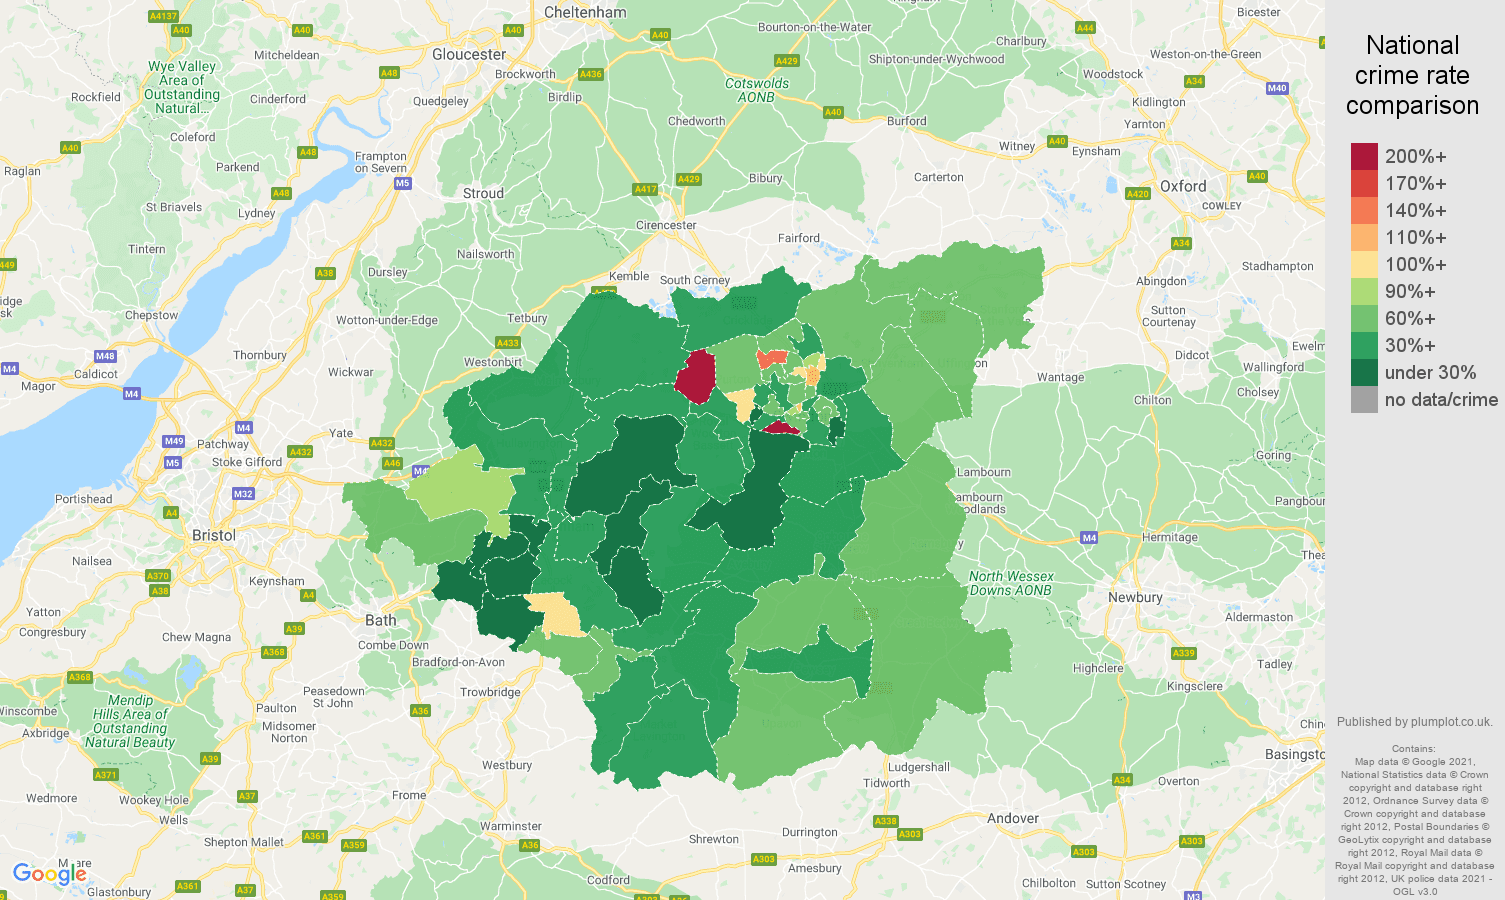 Swindon burglary crime rate comparison map